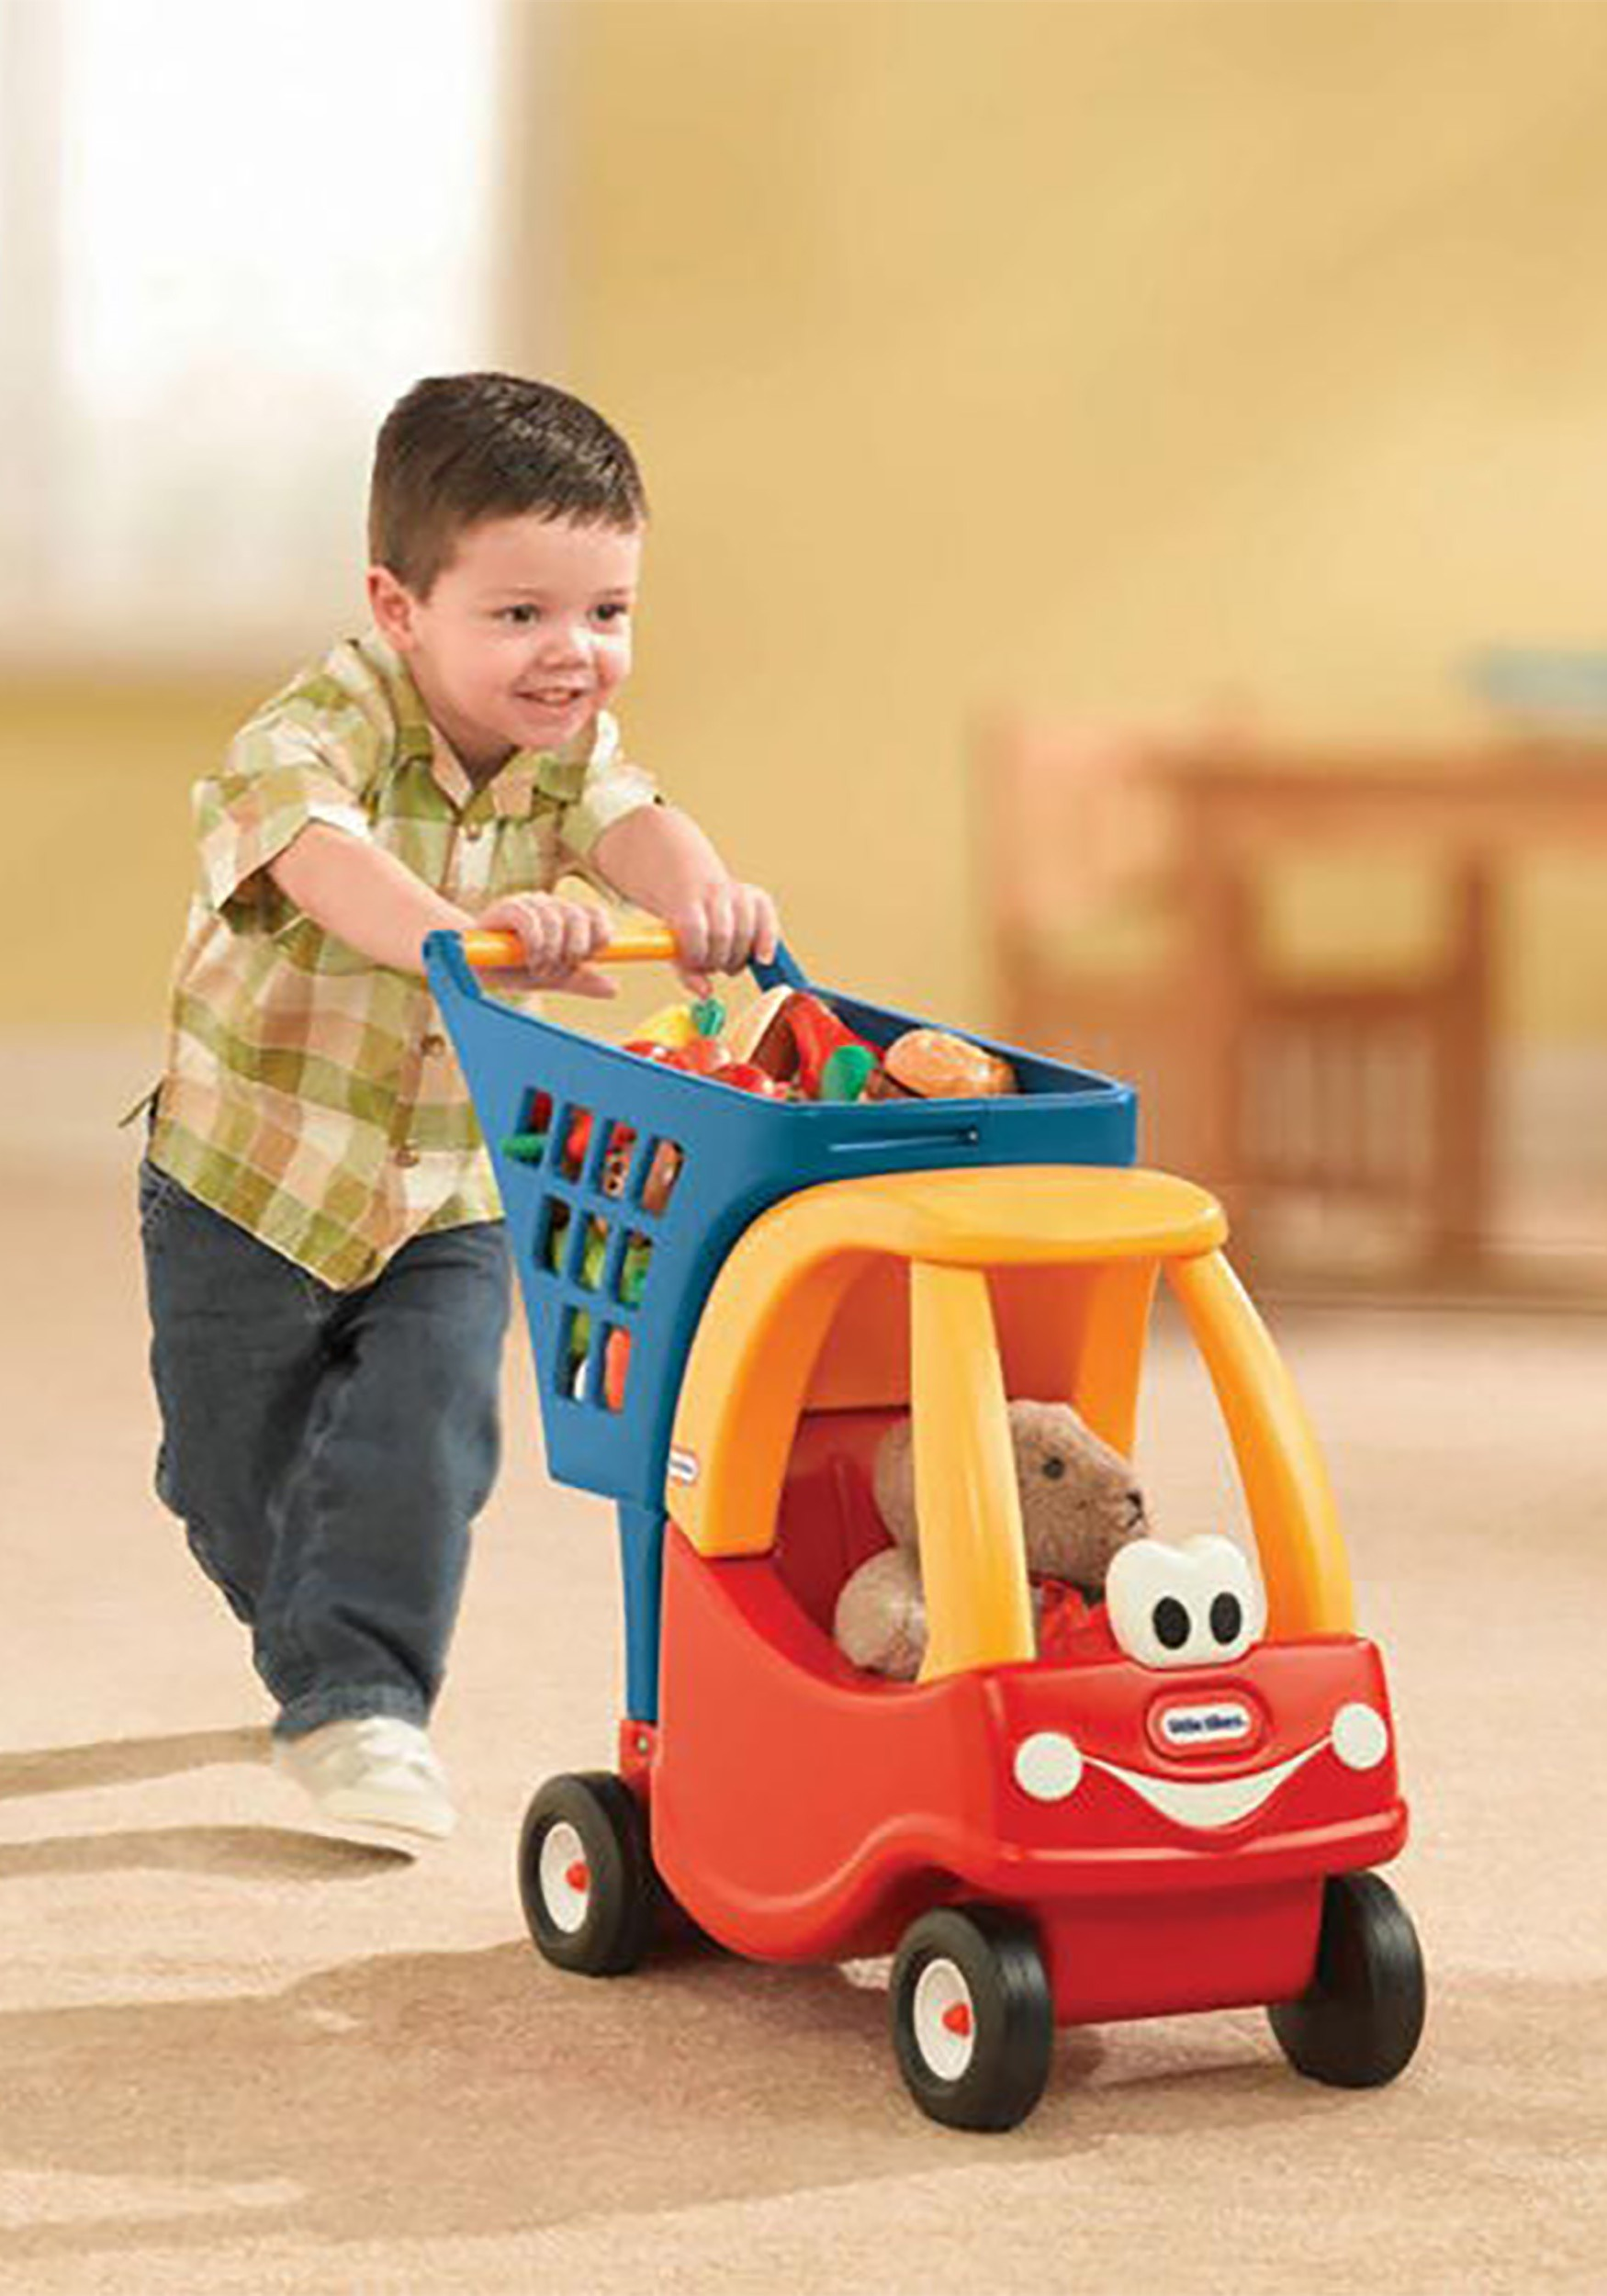 The Little Tikes Role Play Cozy Coupe Shopping Cart